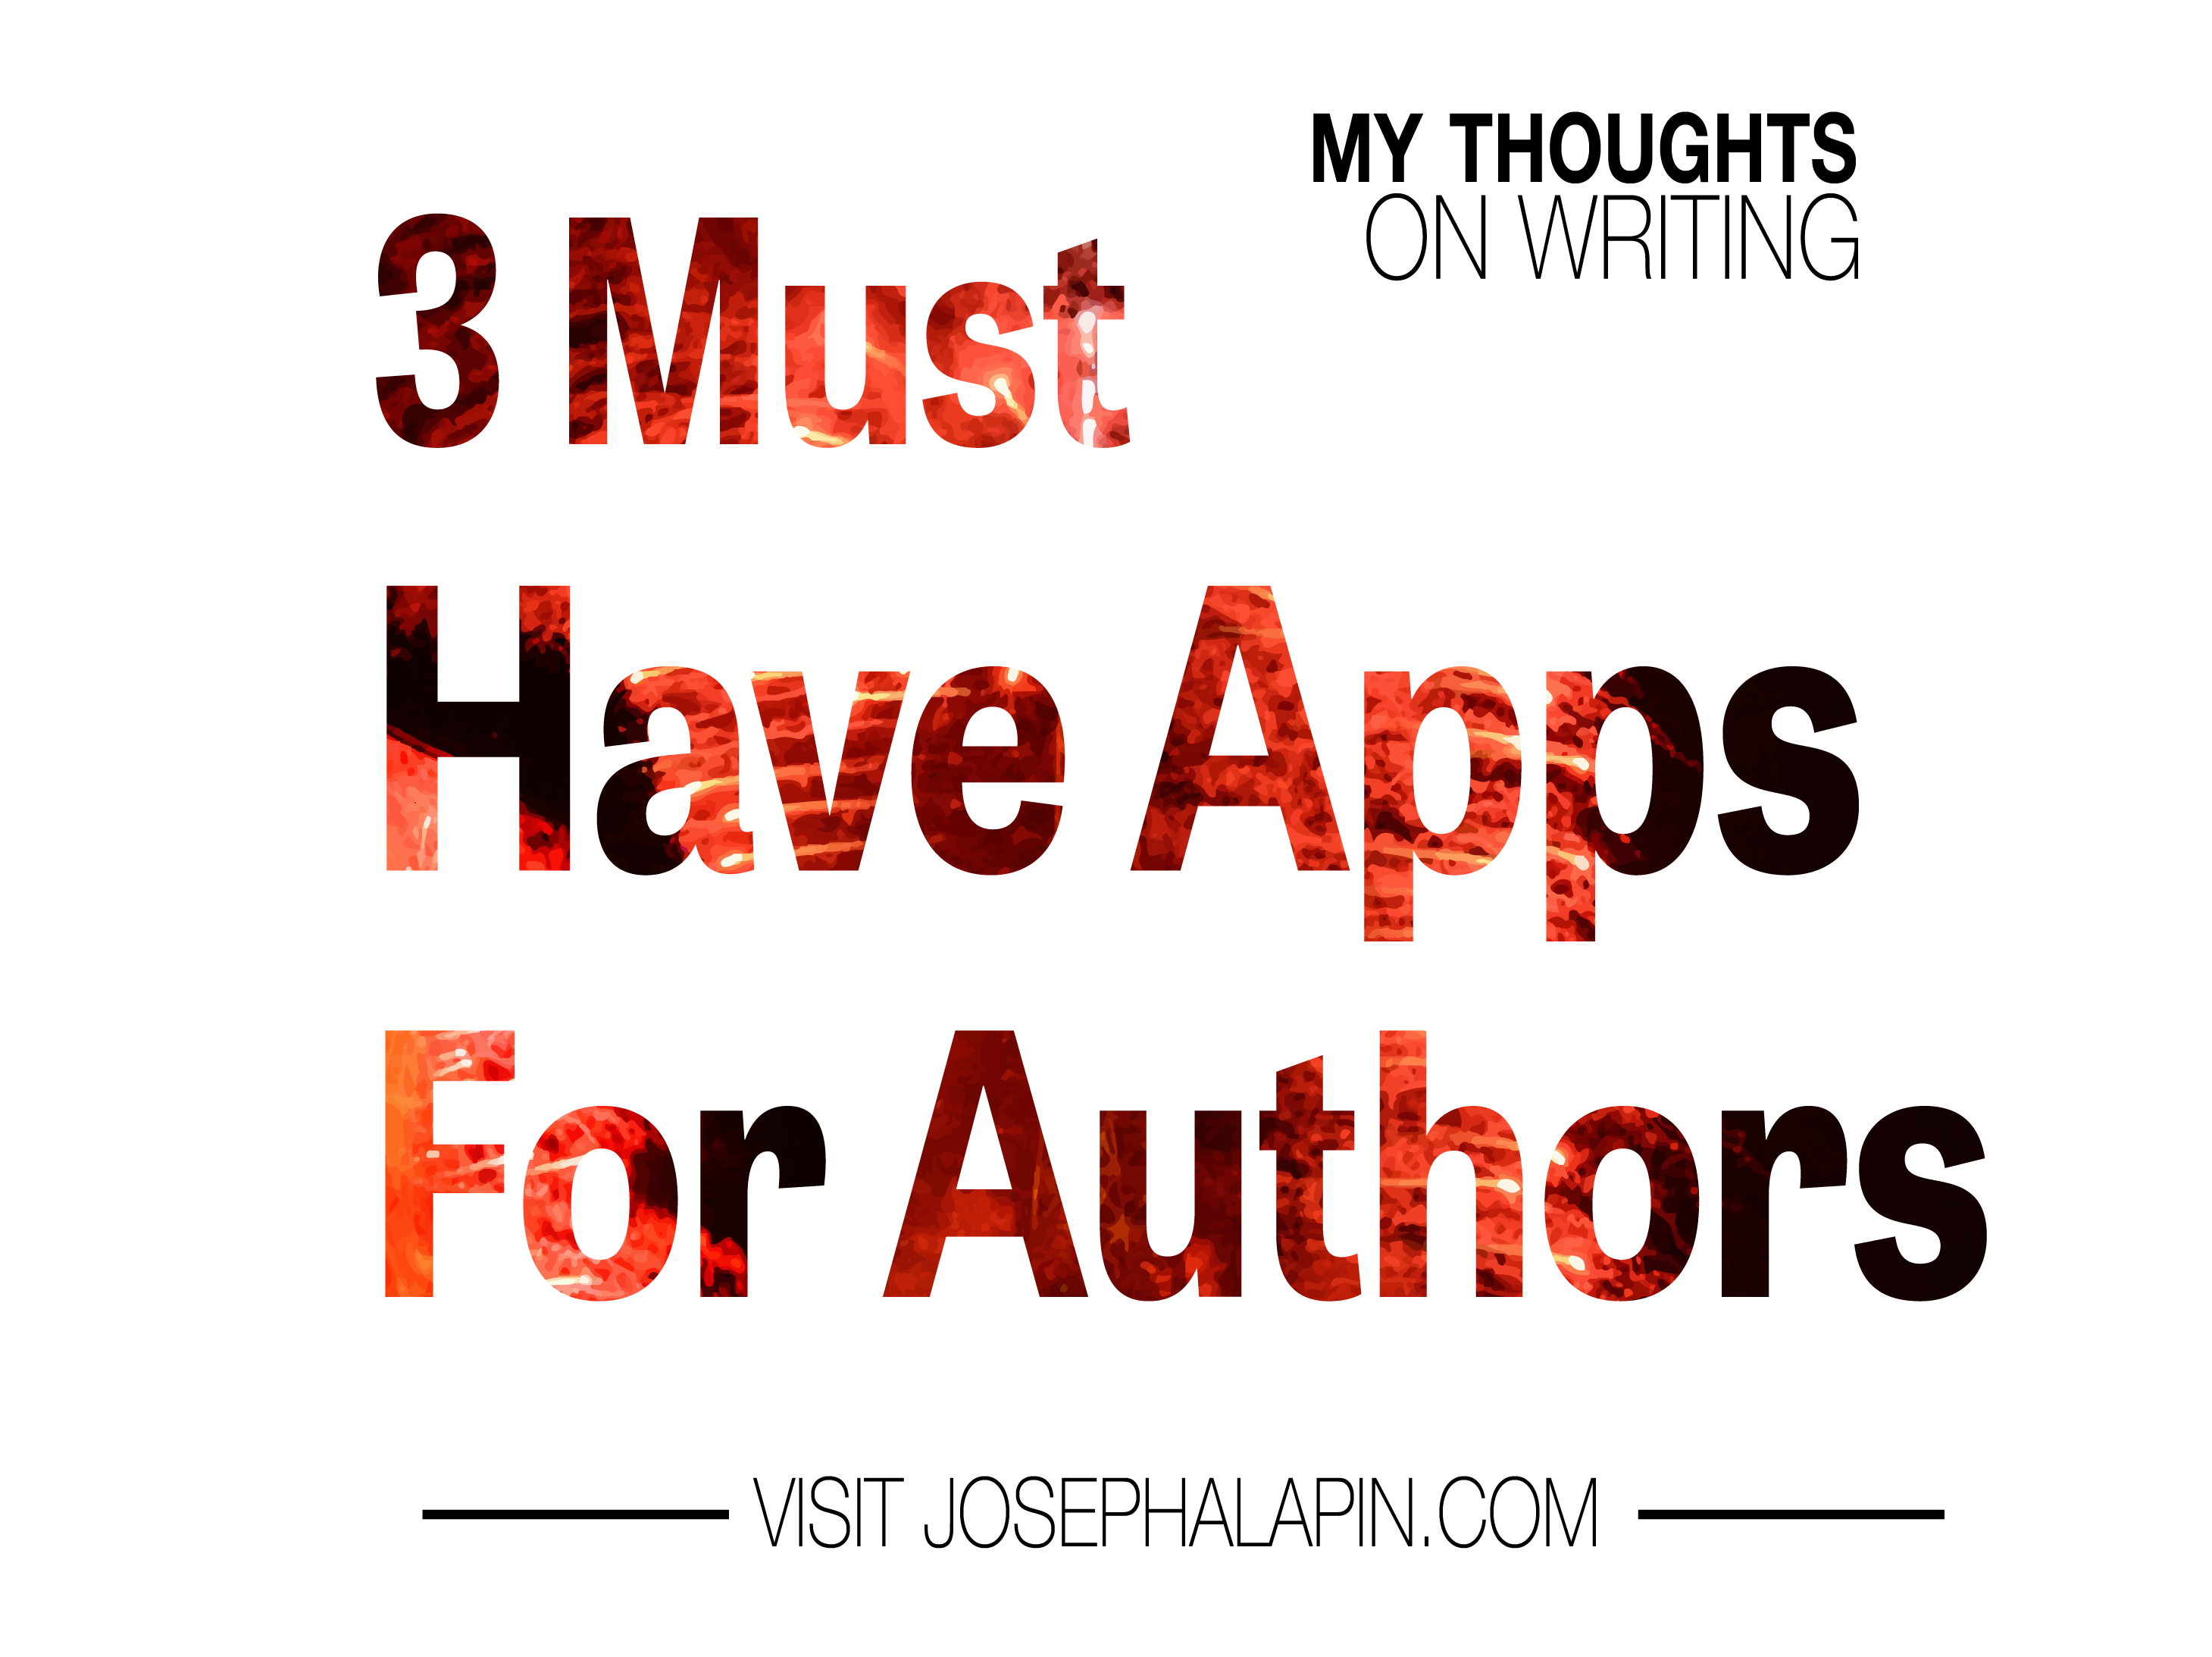 3 Must Have Apps for Authors